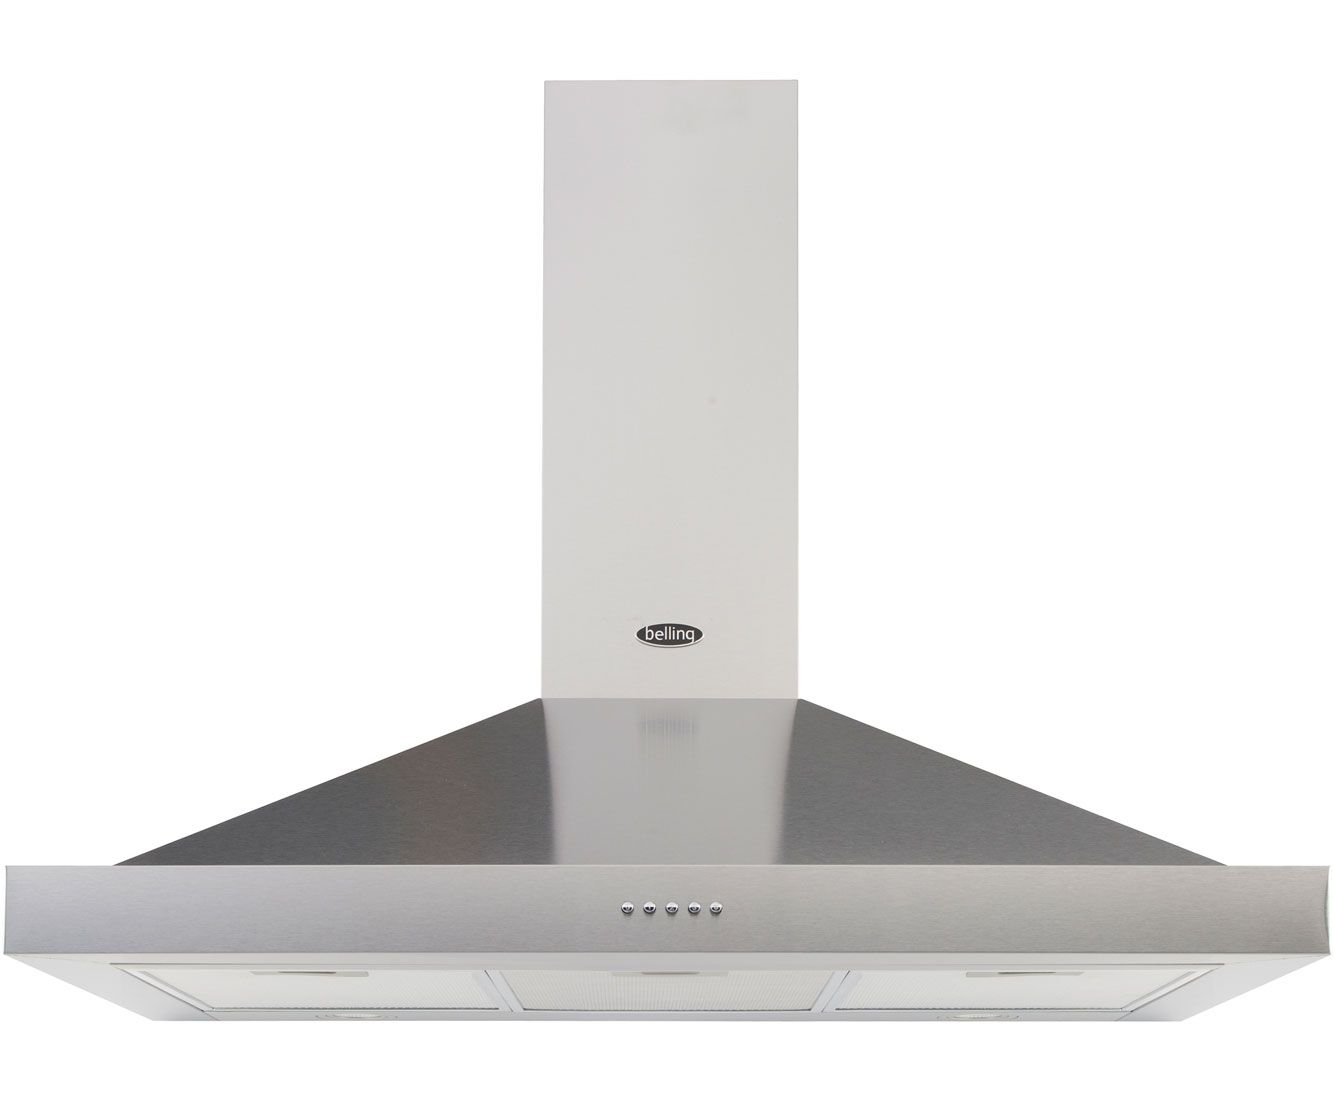 Belling 90DBCHIM Built In Chimney Cooker Hood - Stainless Steel